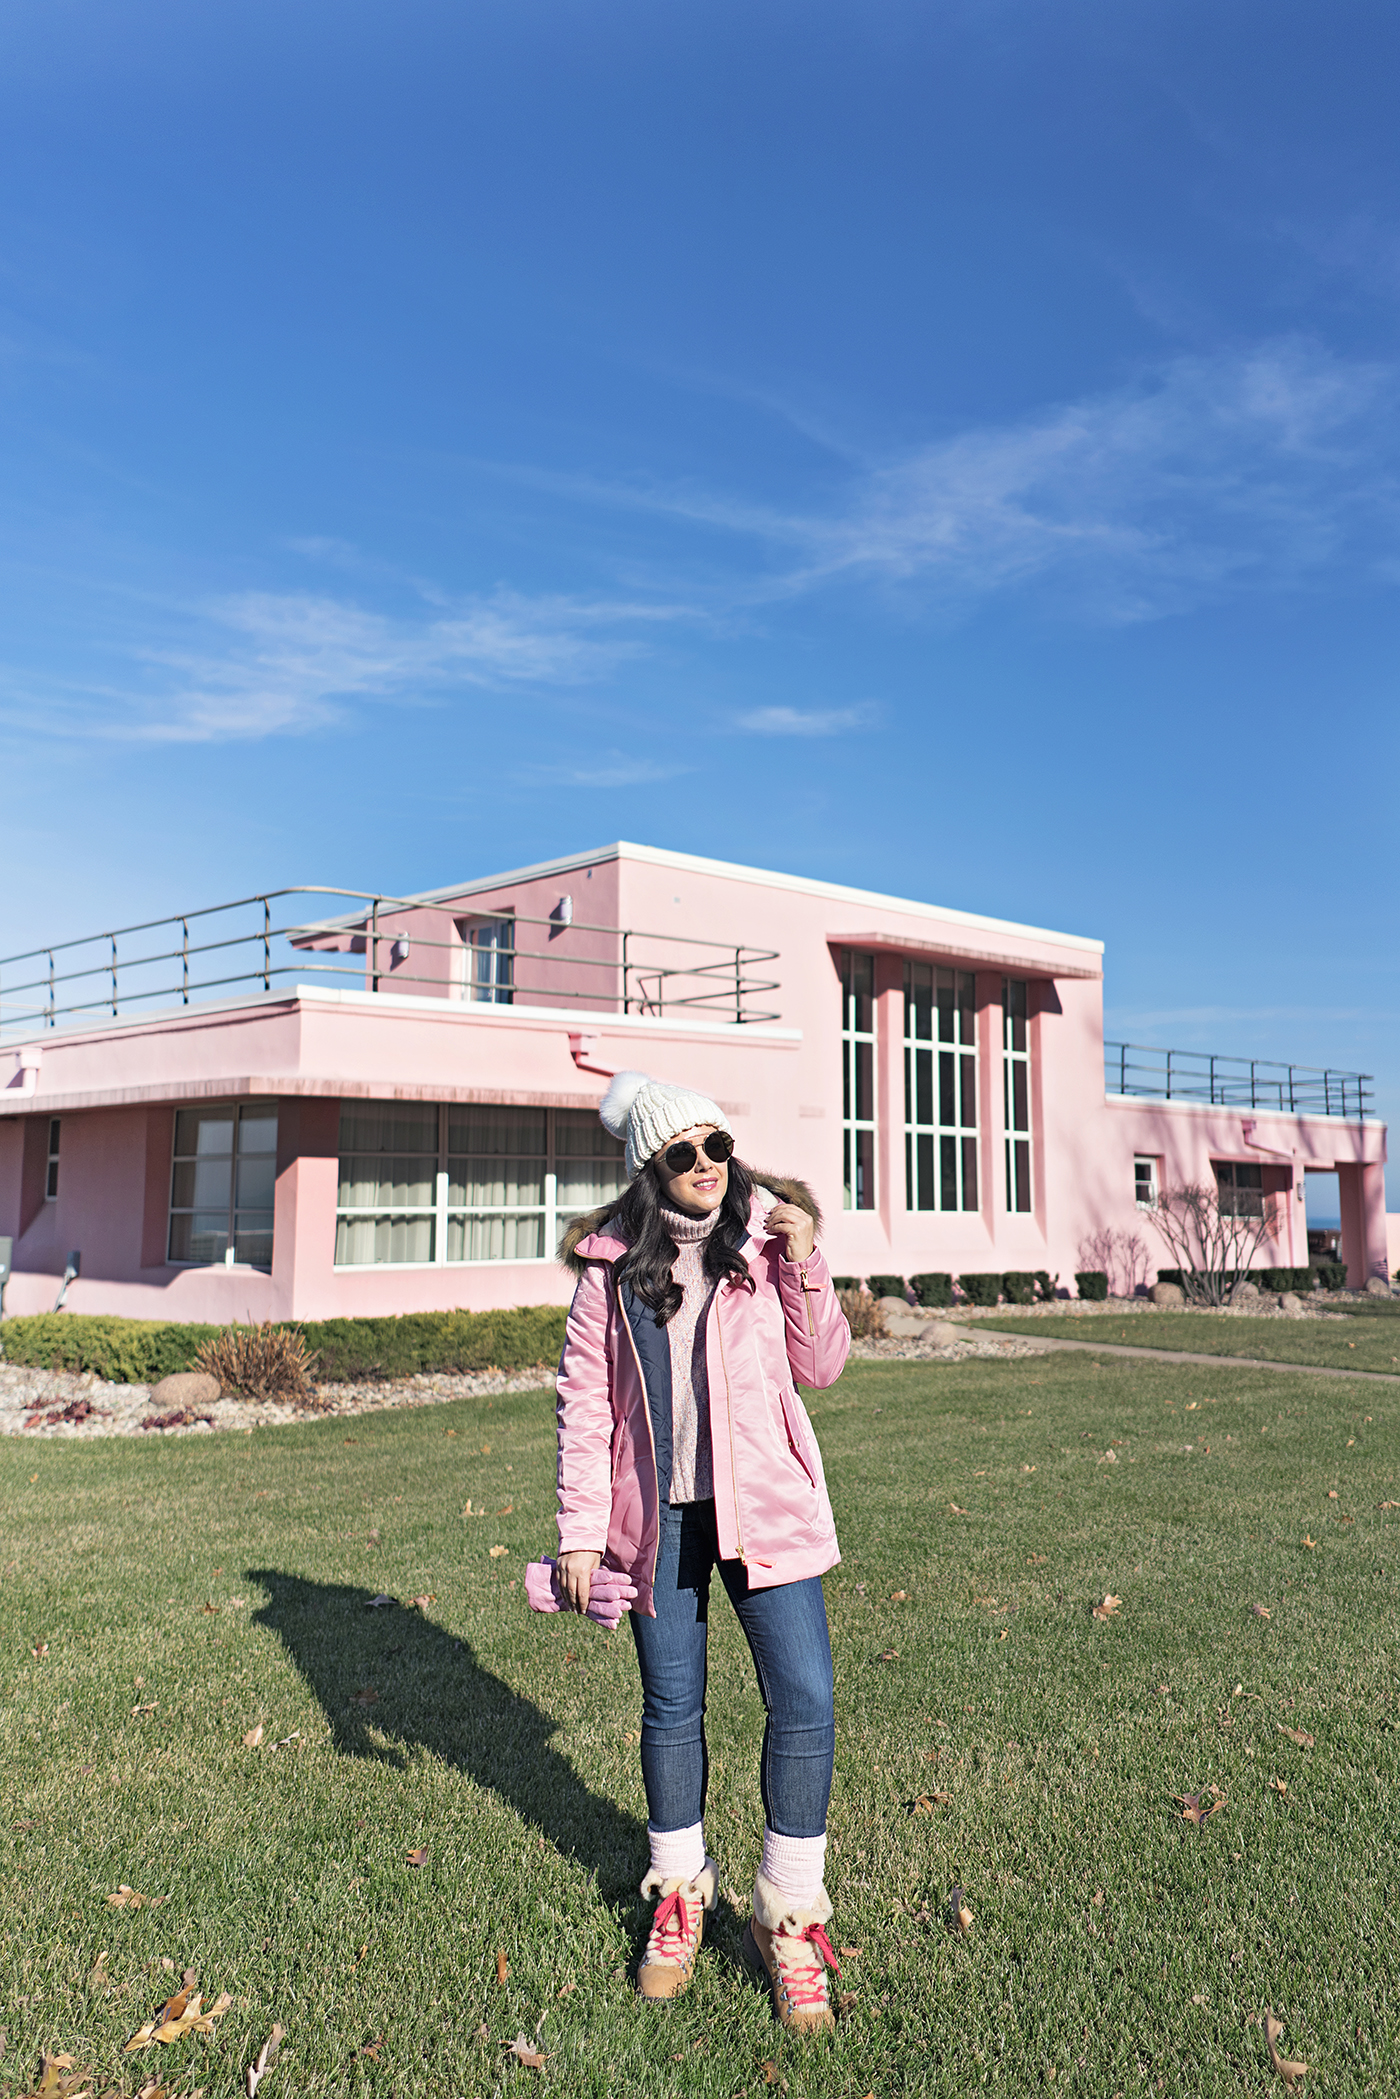 Bundled in Pink in Indiana, Pink Century of Progress Pink House